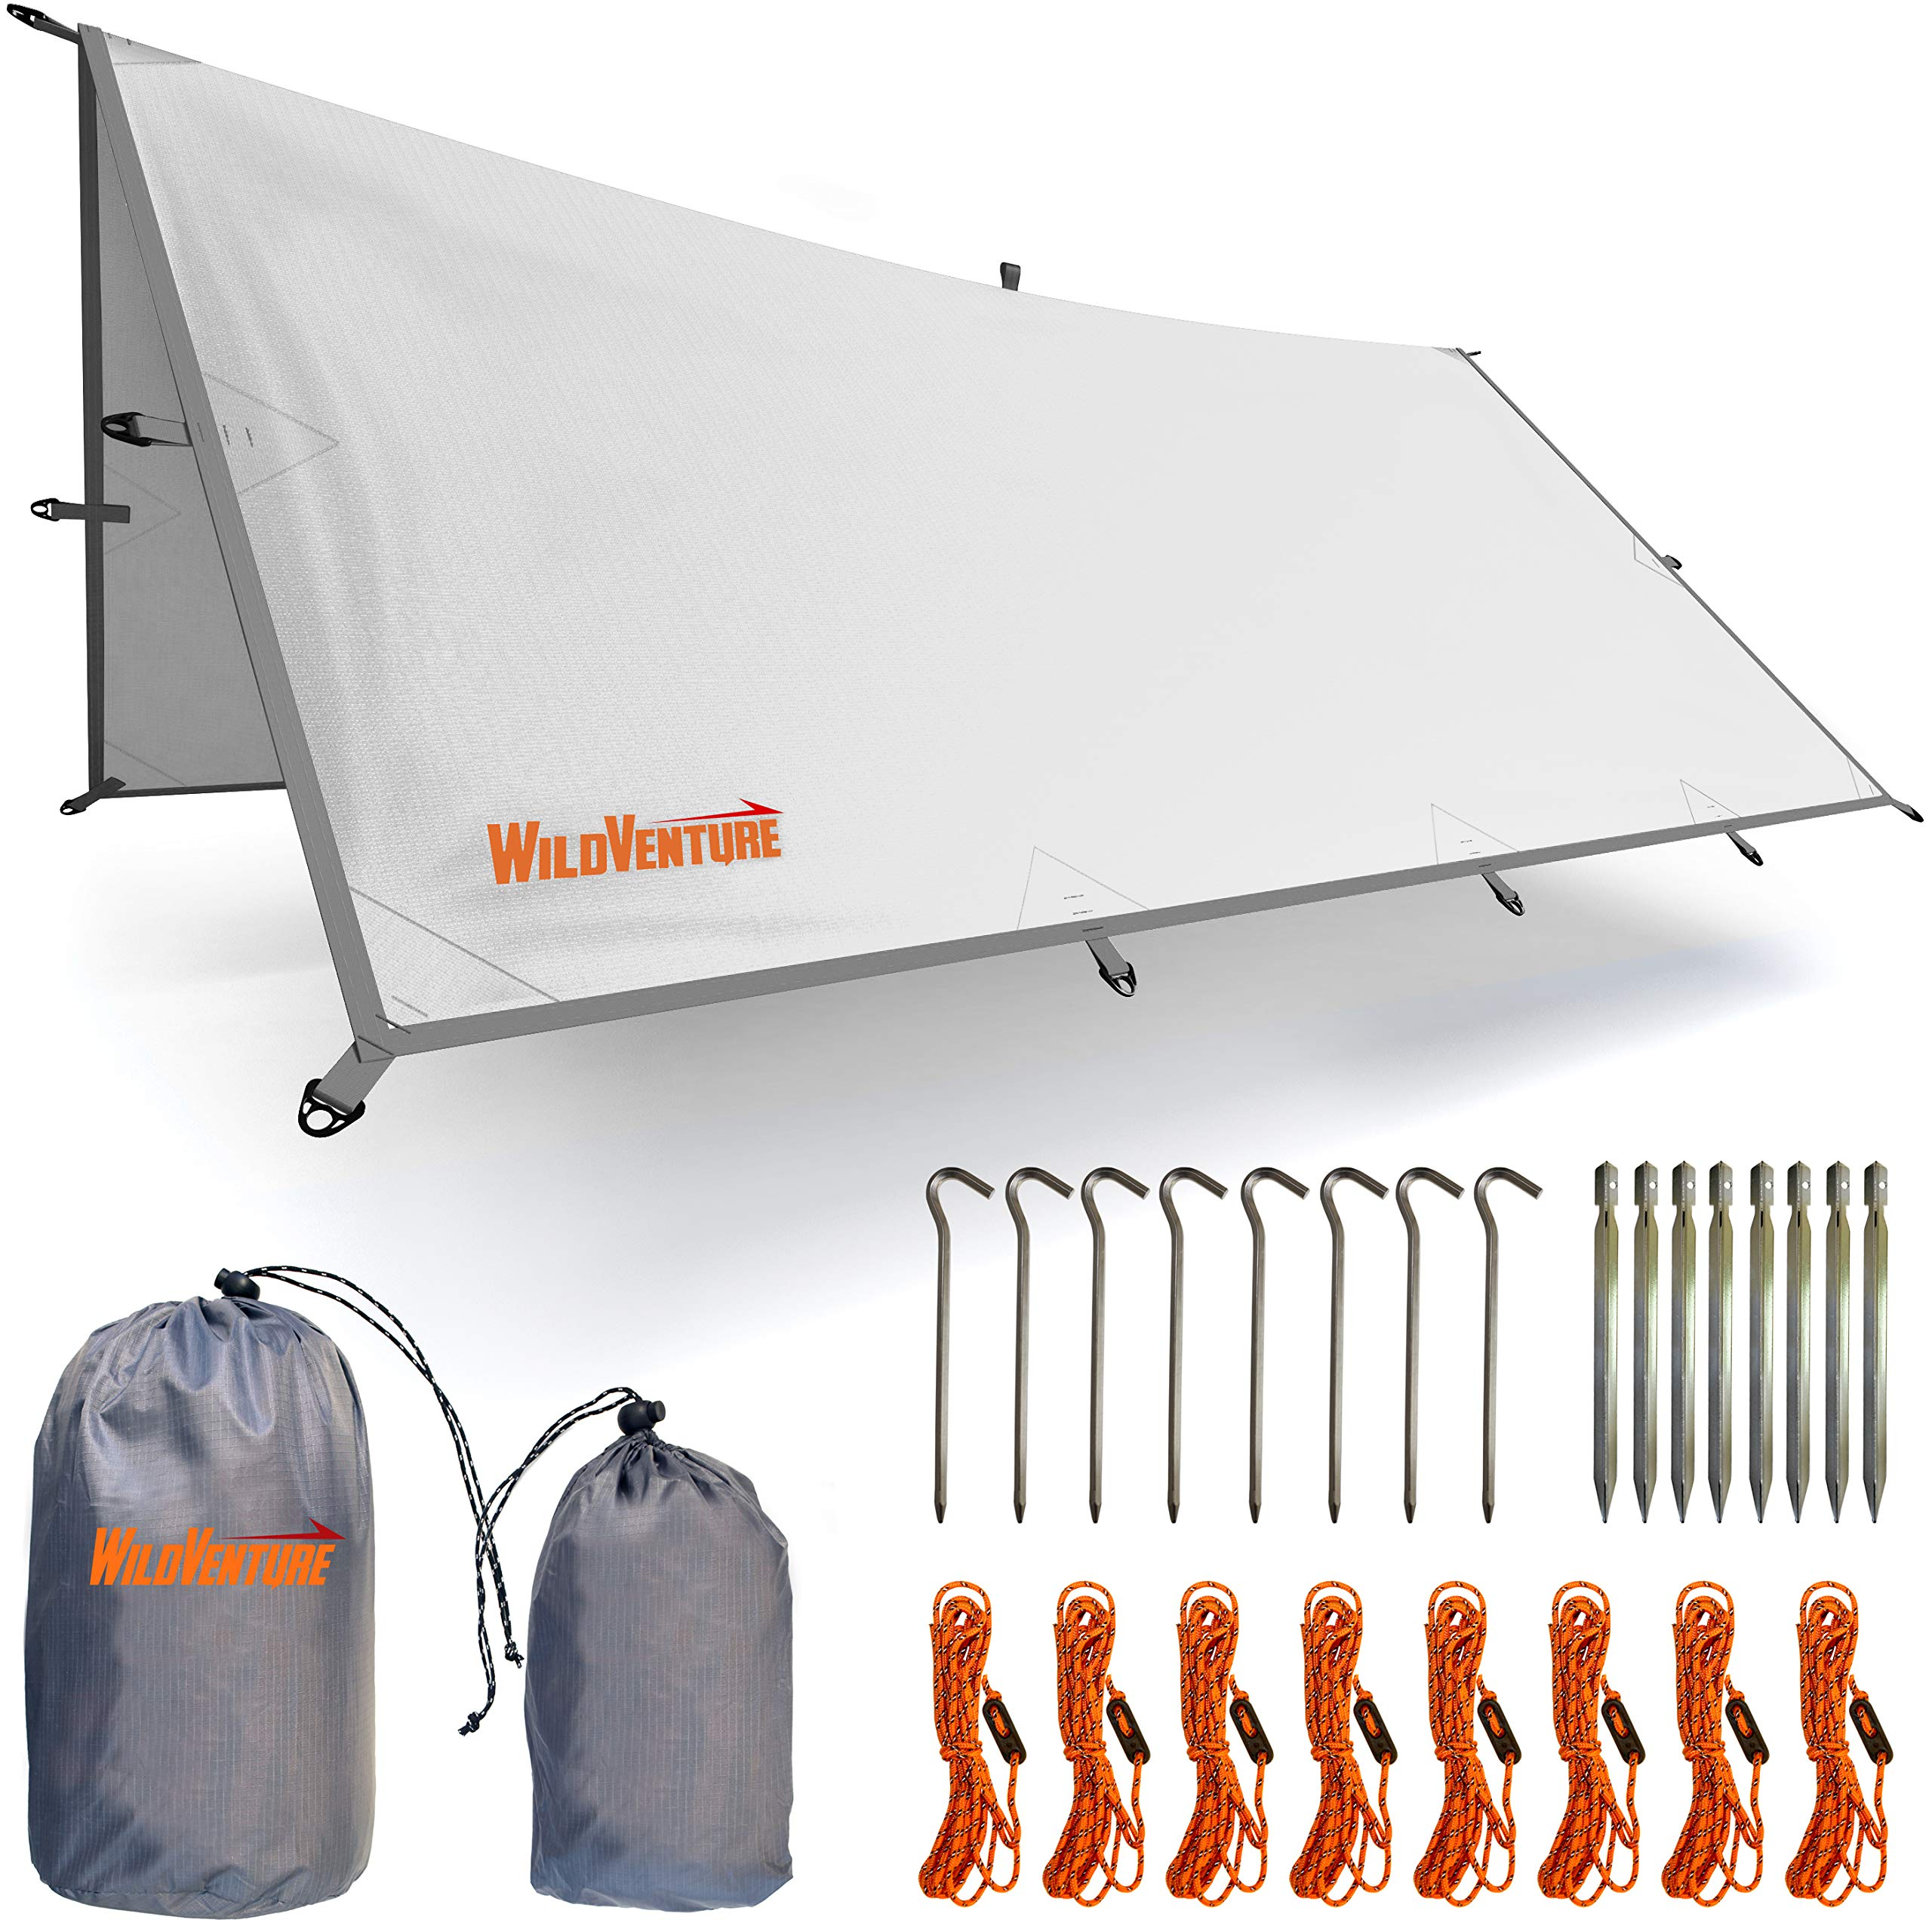 WildVenture Tent Tarp Rain Fly - Waterproof Lightweight Survival Gear Shelter for Camping, Backpacking, and Outdoor Living - 9.8' x 9.3' Tarp Tent (White) by WildVenture